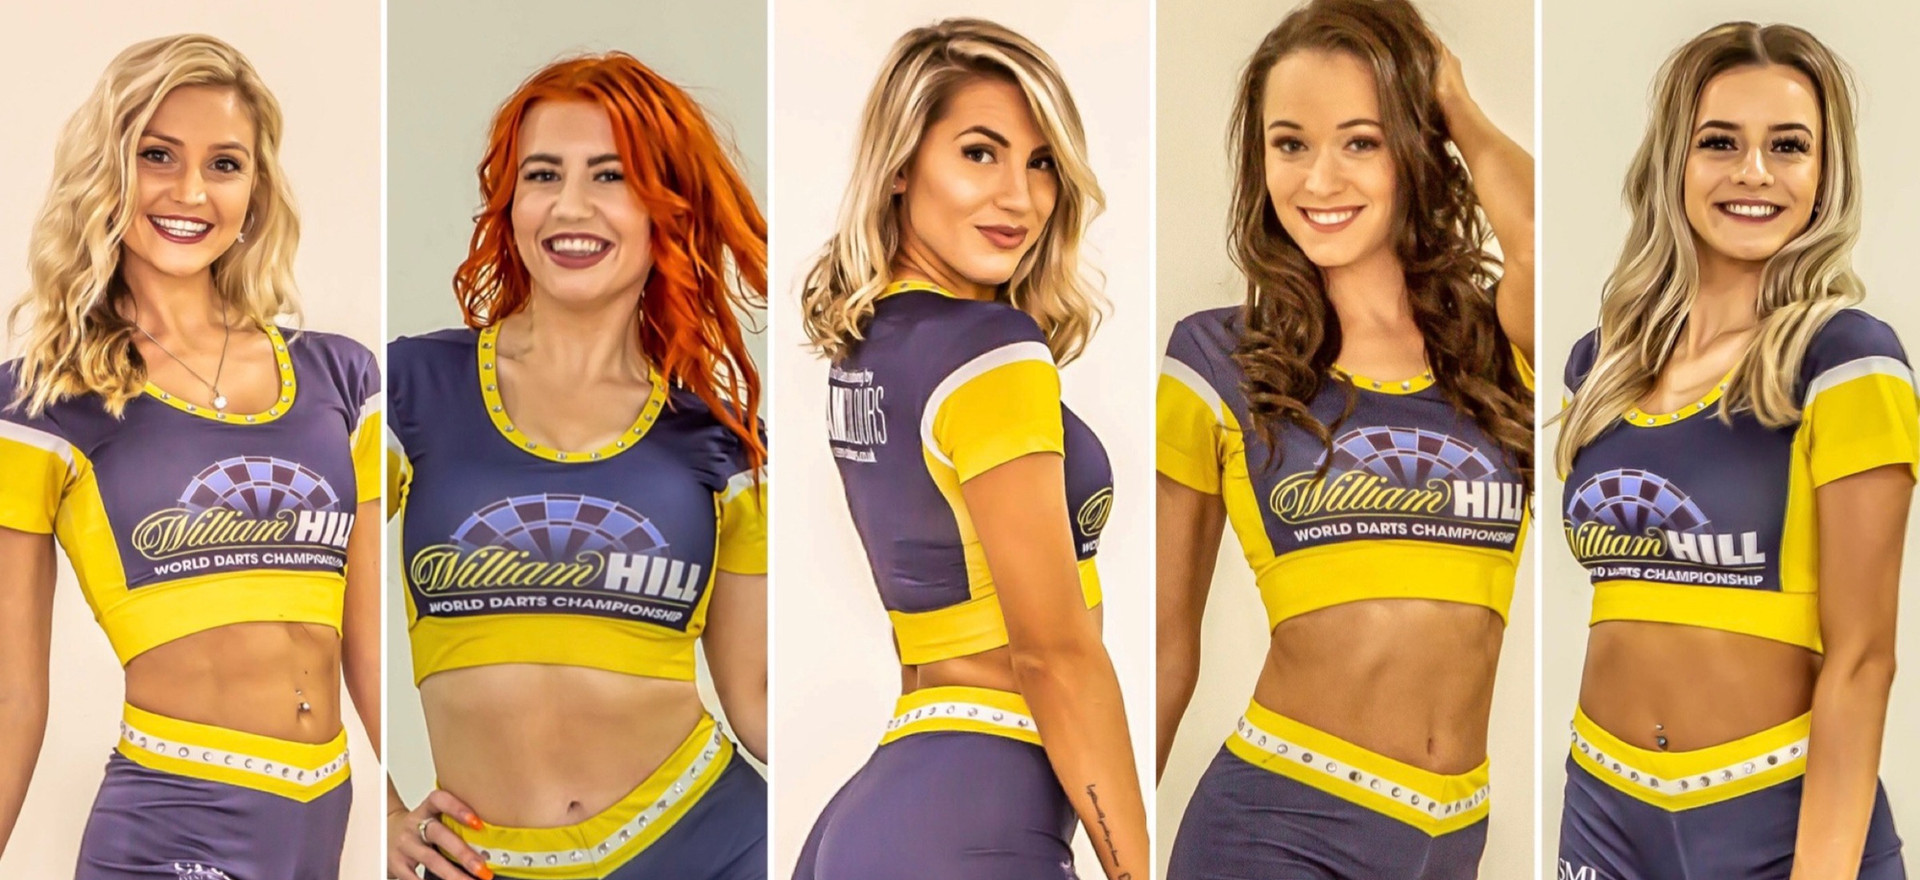 William Hill World Championship Darts Dancers 2020